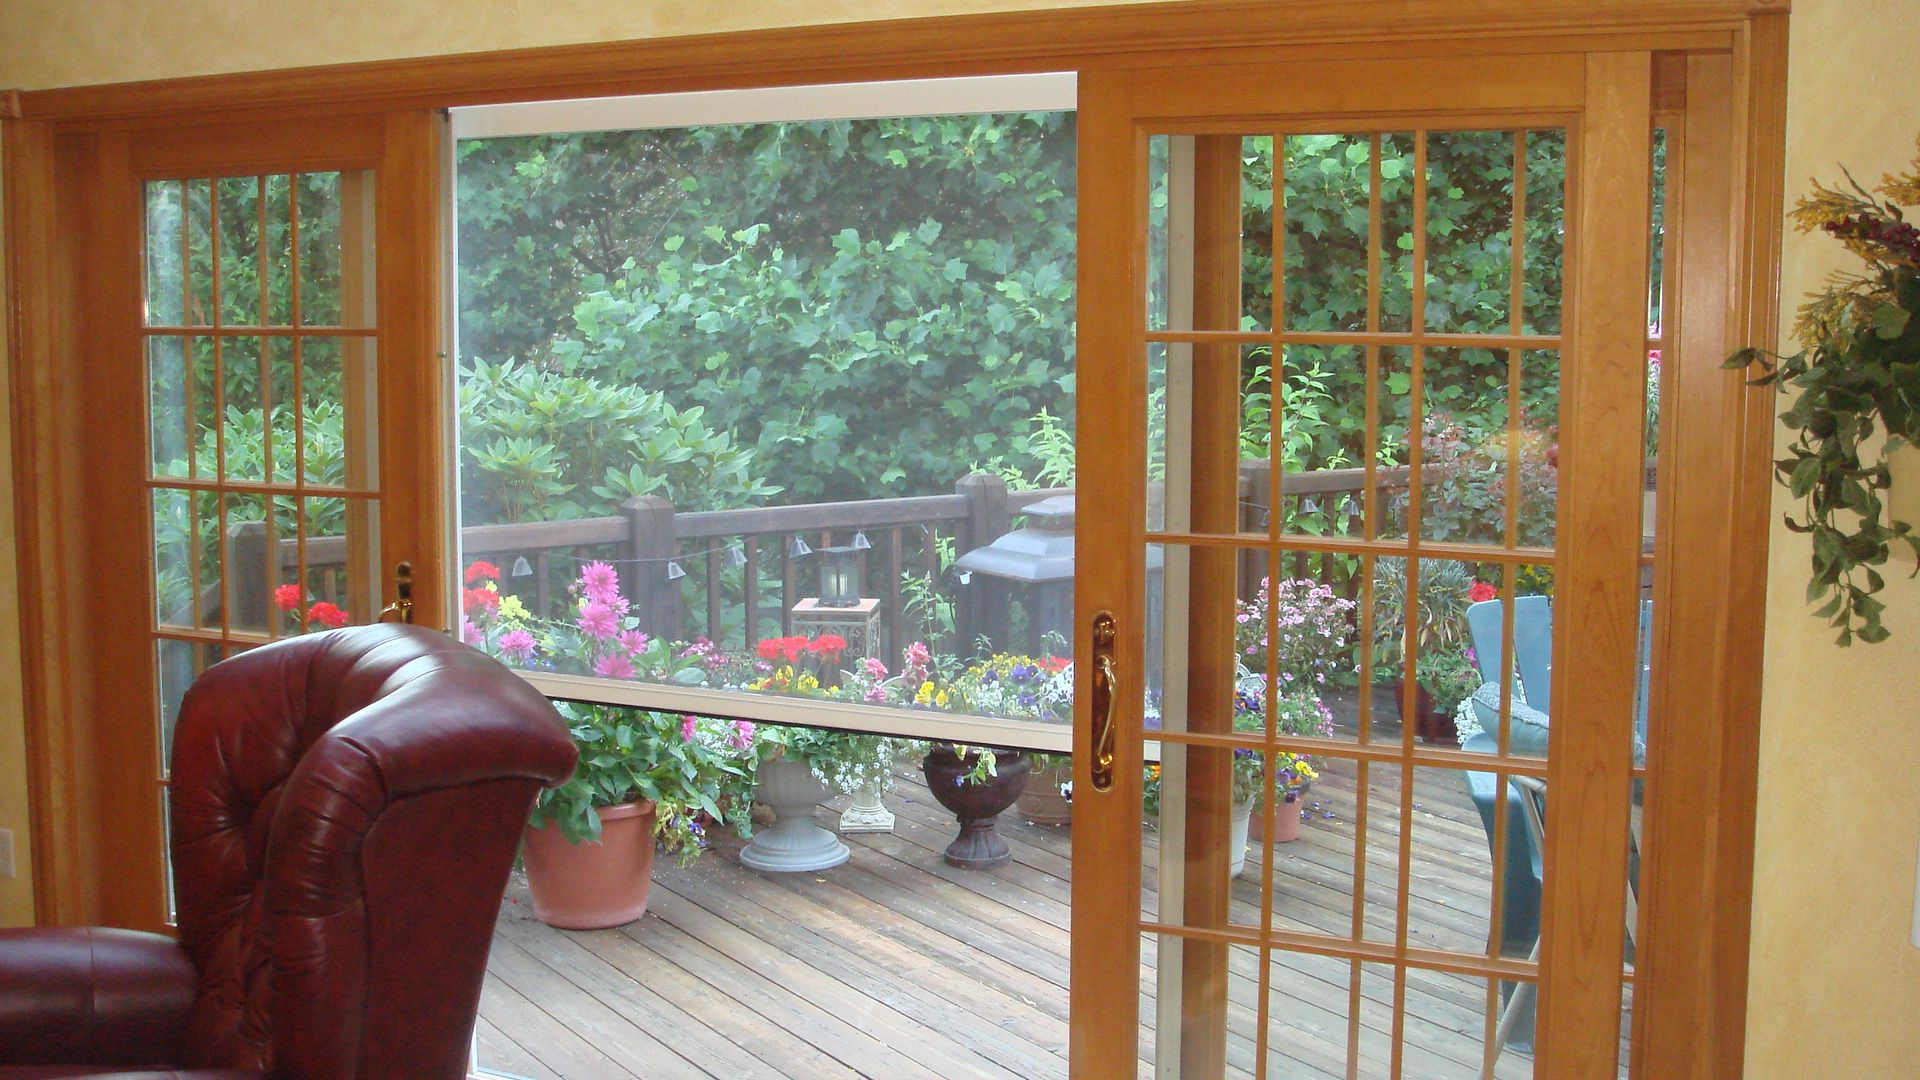 The Olympic Retractable Screen Allows For Natural Ventilation Of